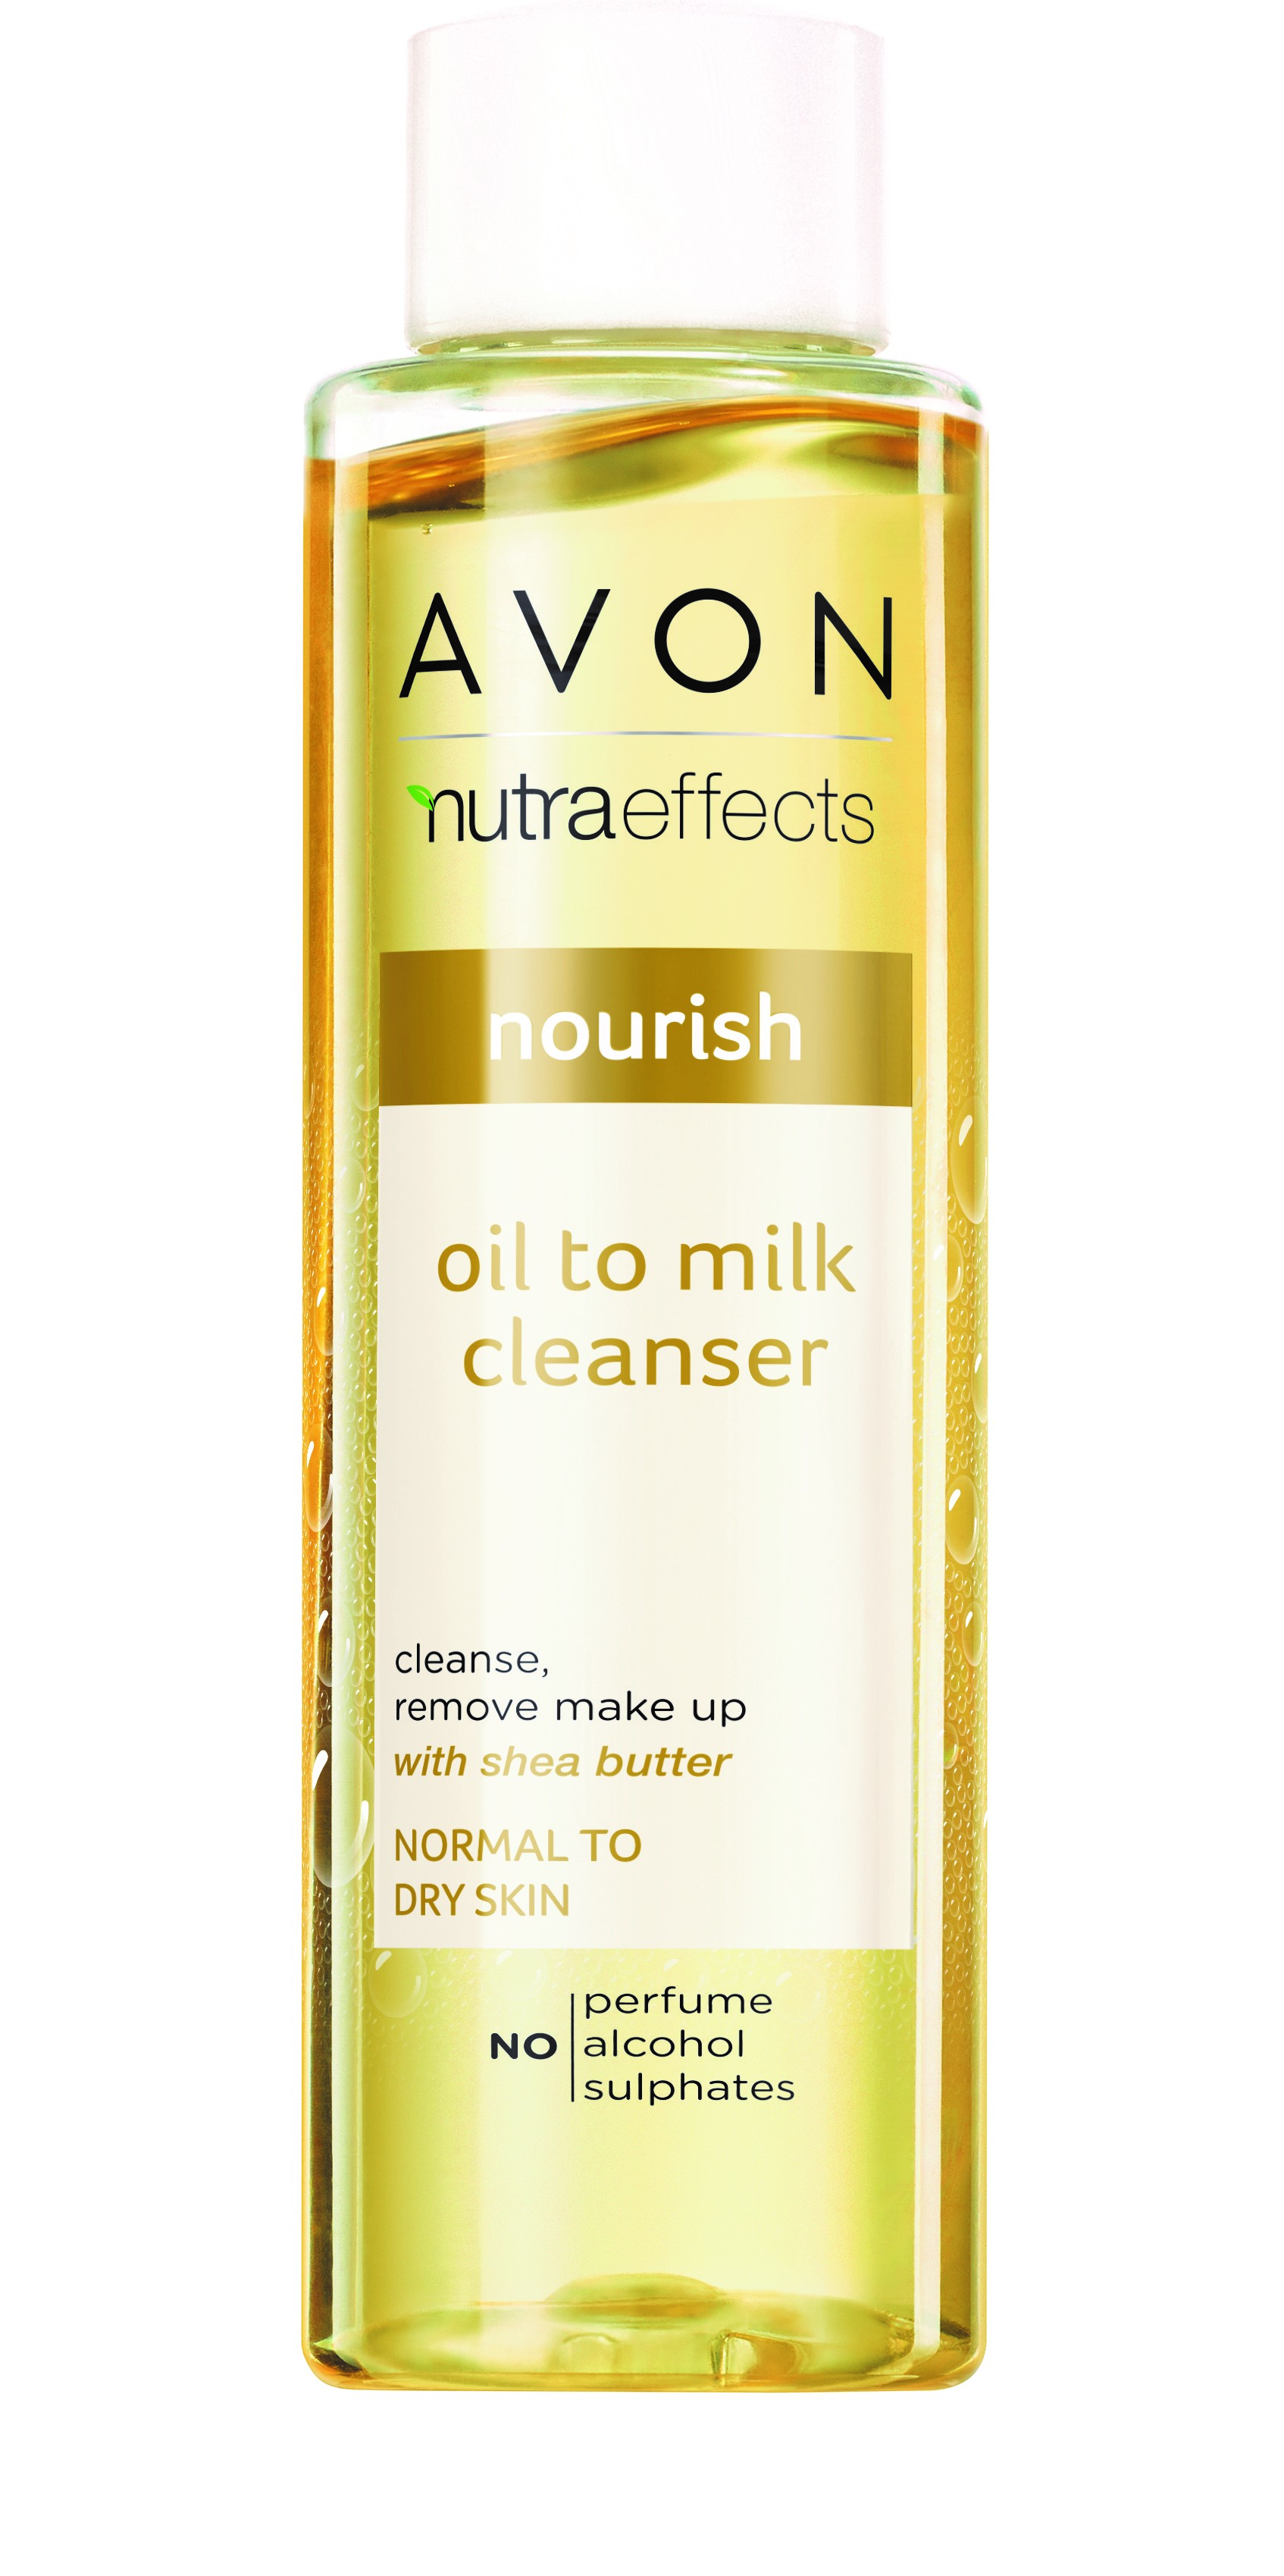 avon_nutra_effects_nourish_arctisztito_olaj_2500_ft_0869_8.jpg